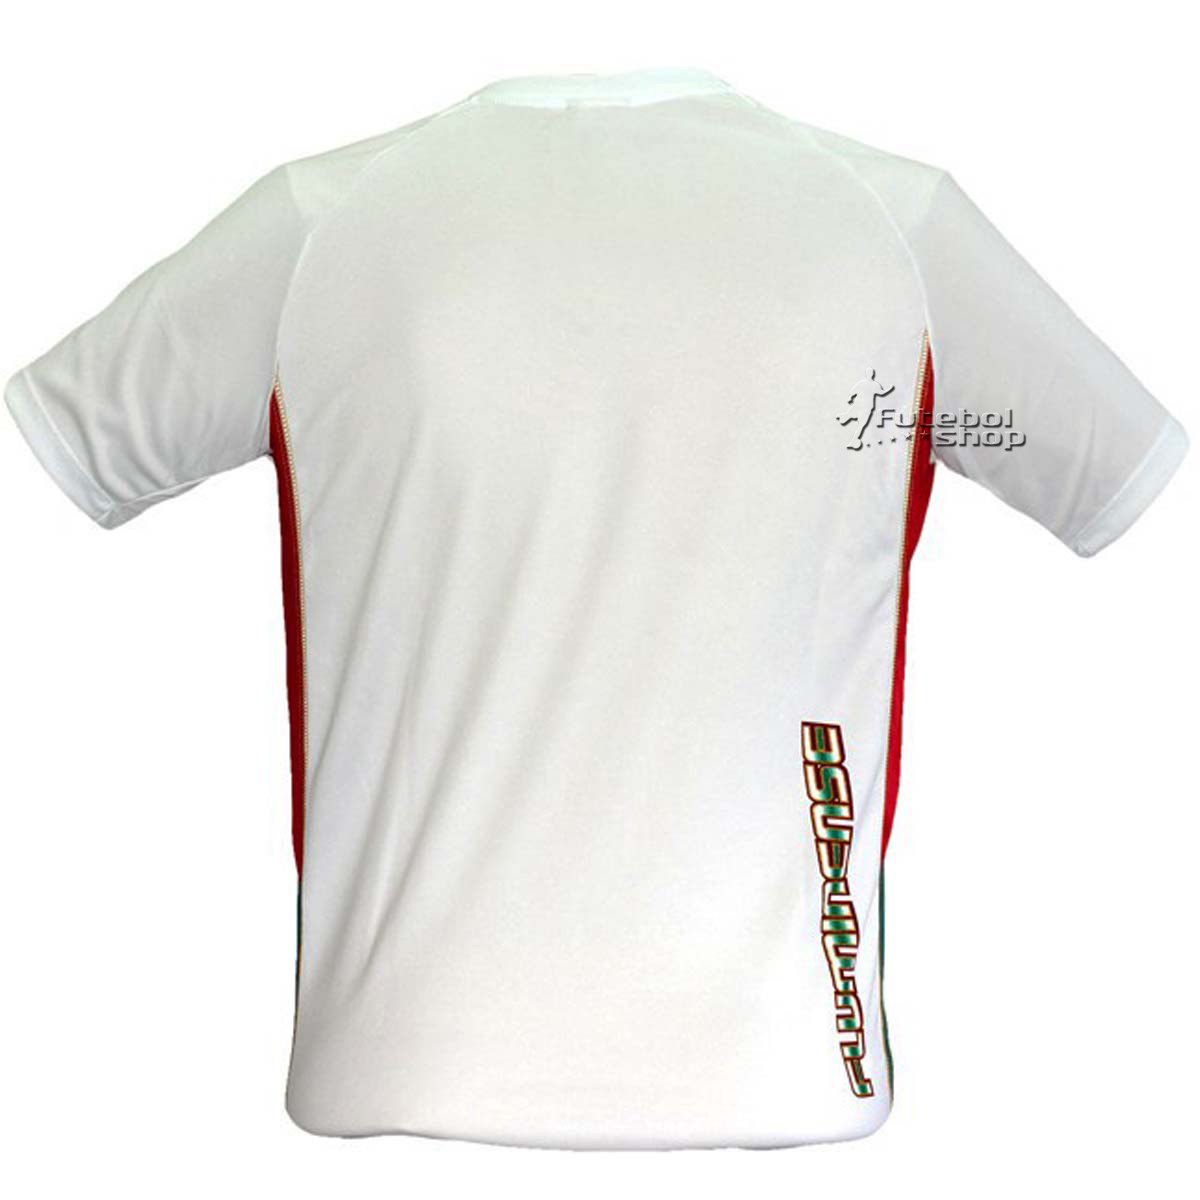 Camisa do Fluminense Braziline Voxx